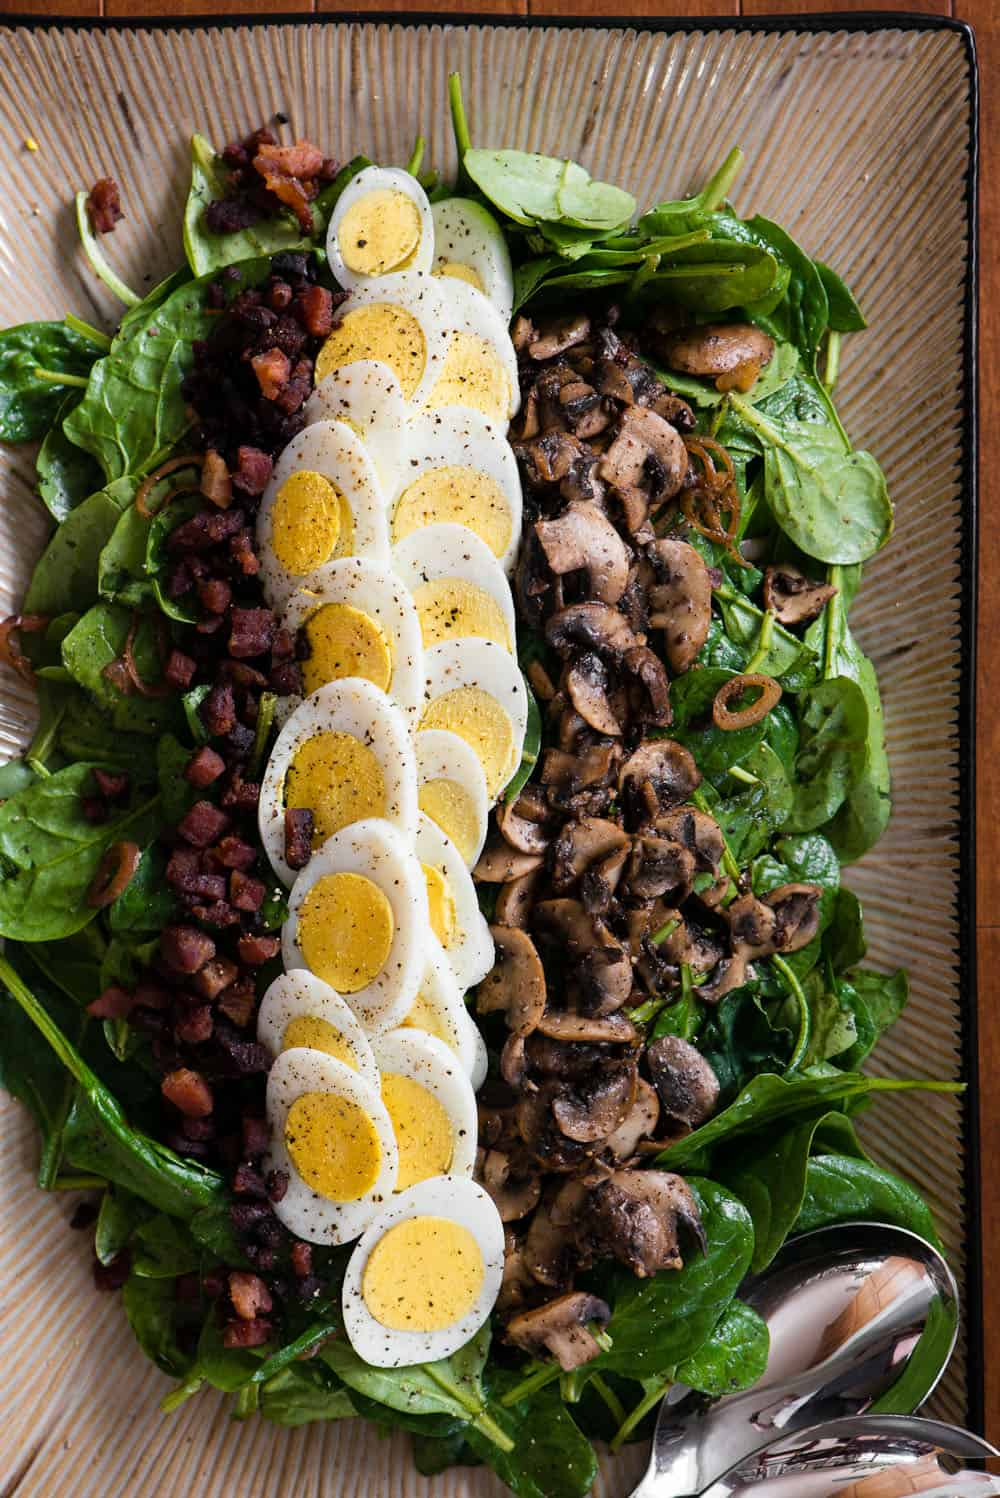 warm spinach salad recipe with bacon, eggs, mushrooms, and dressing